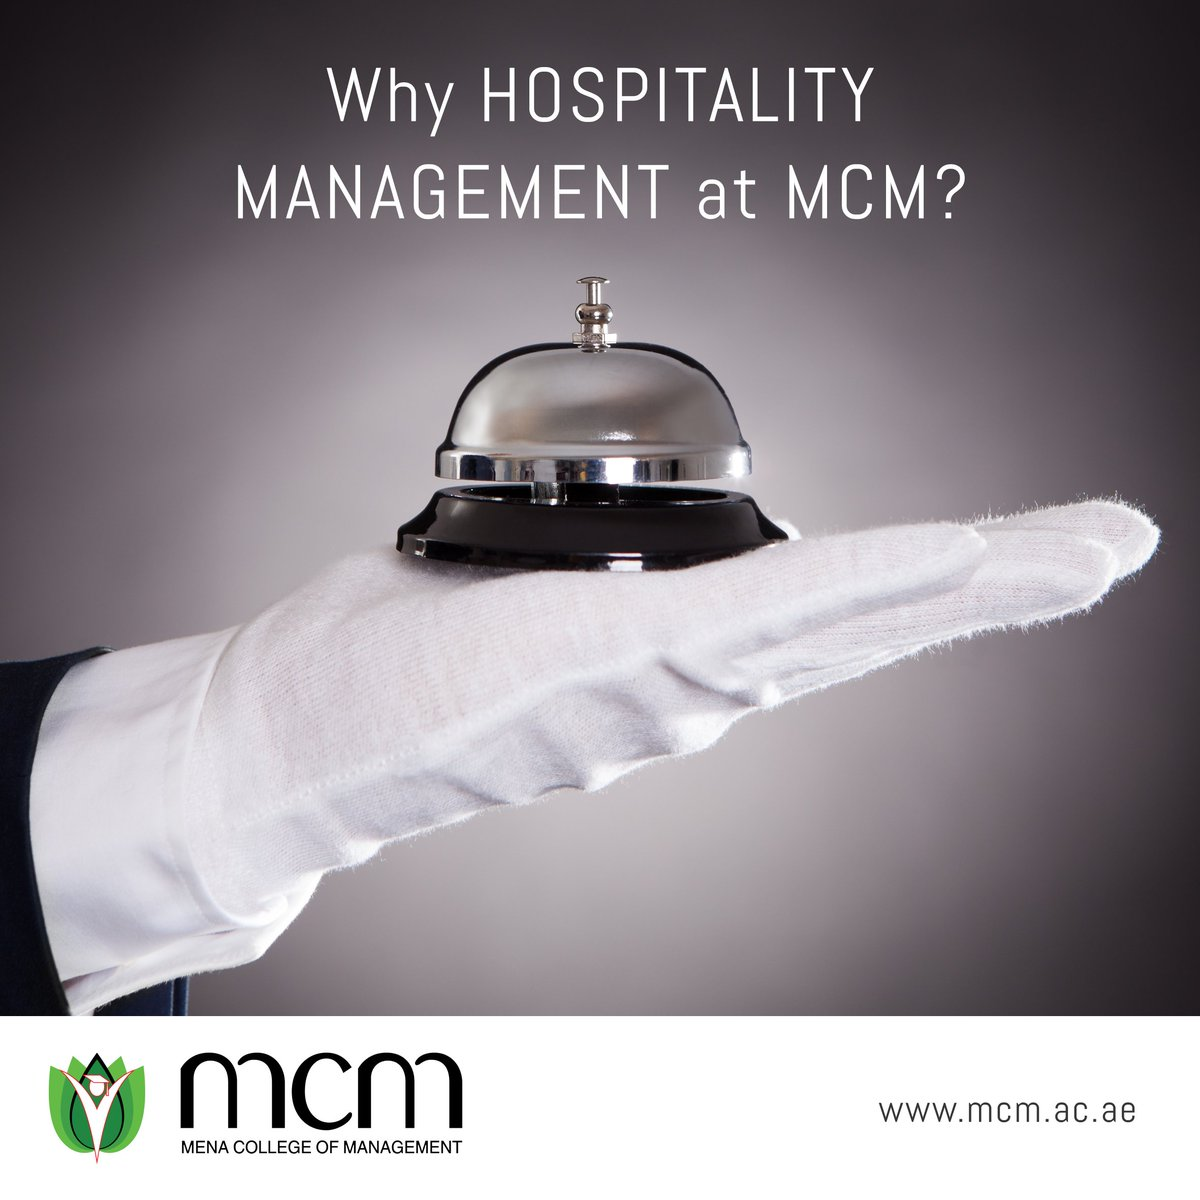 Why Study Hospitality Management #MCM? -Endless career opportunities -Chance to travel -Learn vital skills -Weekend Classes  -Scholarships offered -Internships -Strategic Location Learn More:  http://www.mcm.ac.ae +971564151557   043841000 ————————————— #career #mydubai